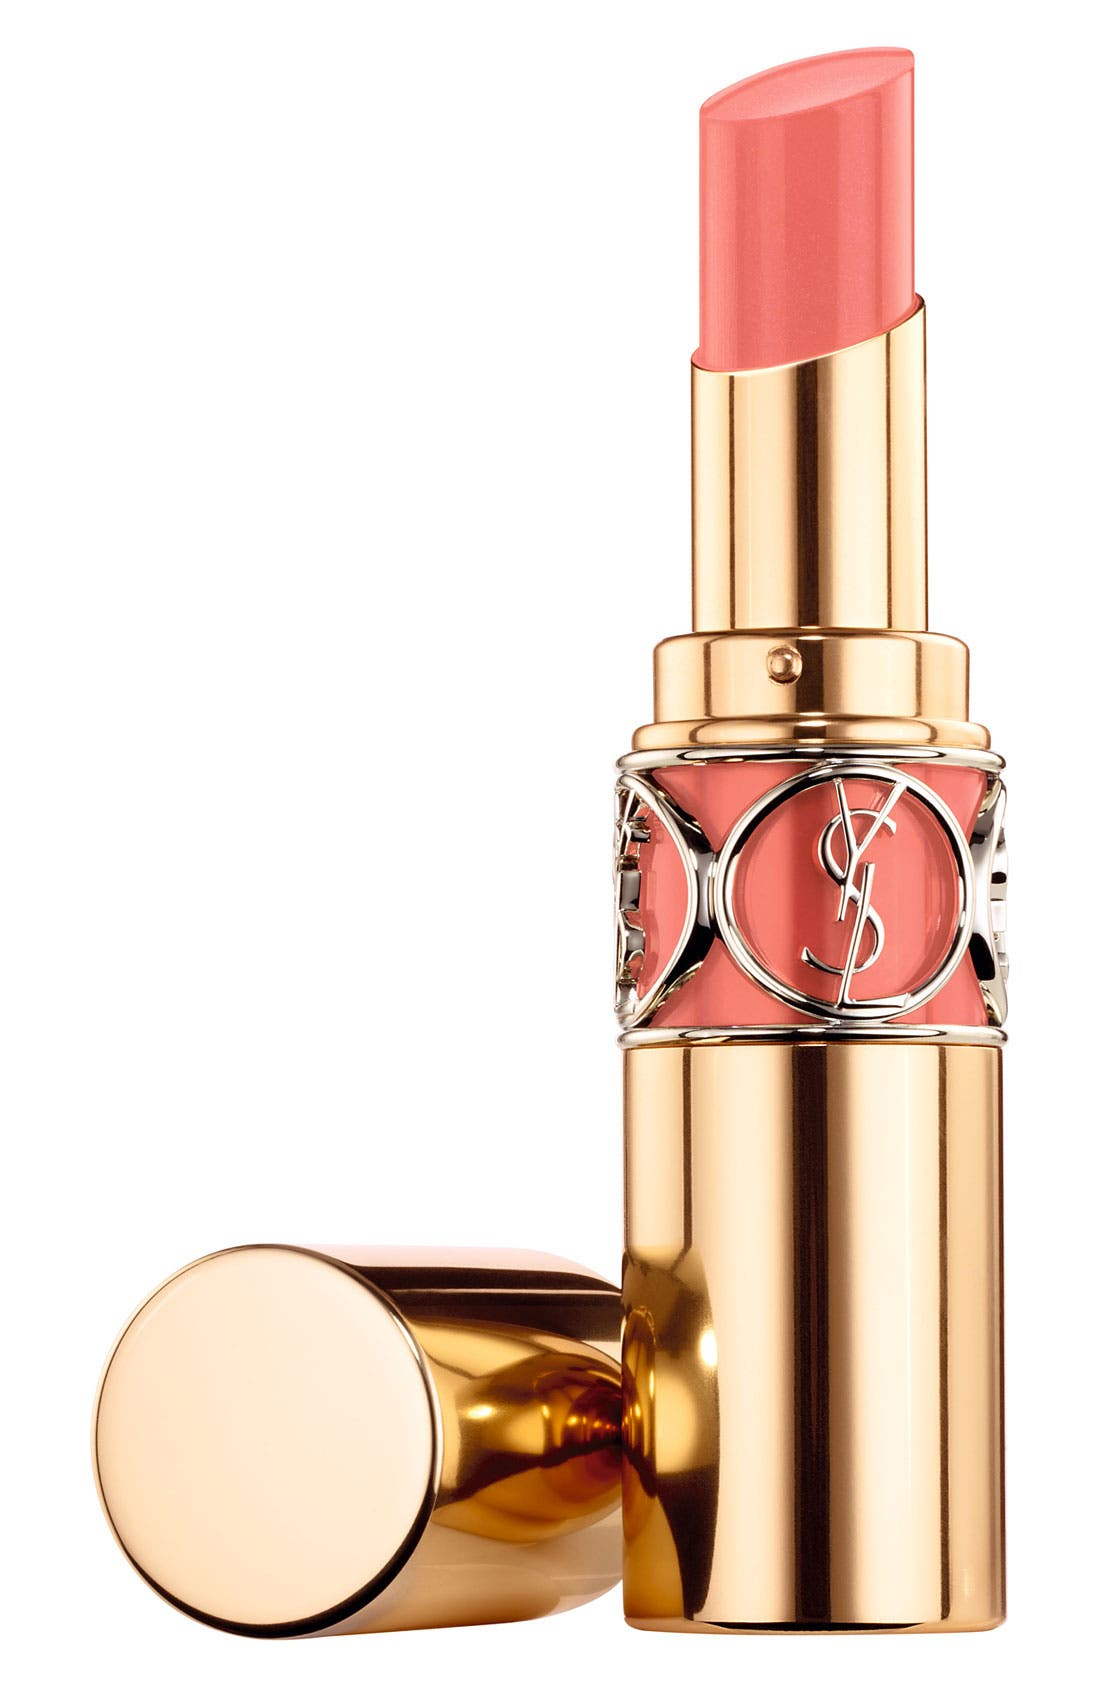 Yves Saint Laurent Rouge Volupte Shine Oil-In-Stick Lipstick - 15 Corail Intuitive